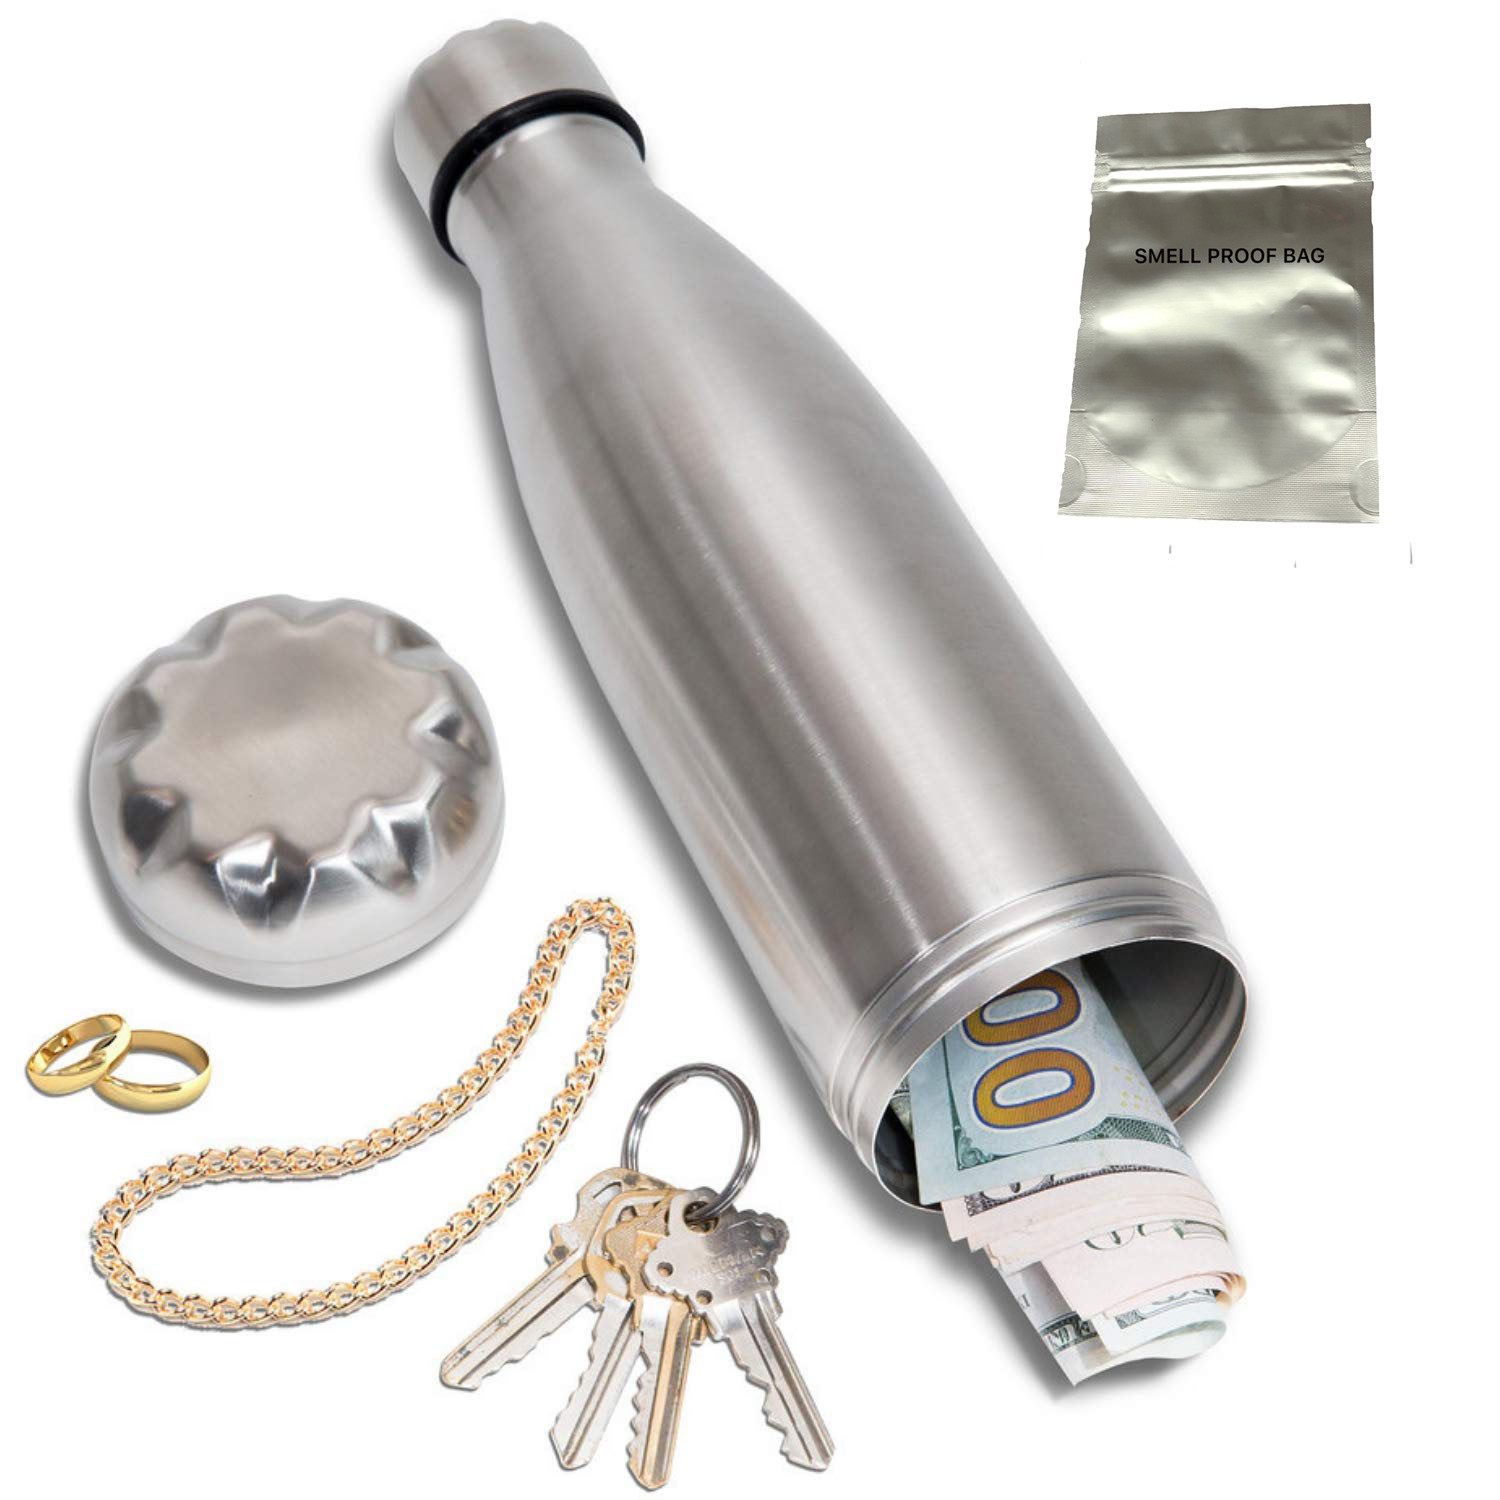 Diversion Water Bottle Can Safe Stainless Steel Tumbler With Hiding Spot For Money, Bonus Smell Proof Bag,Discreet